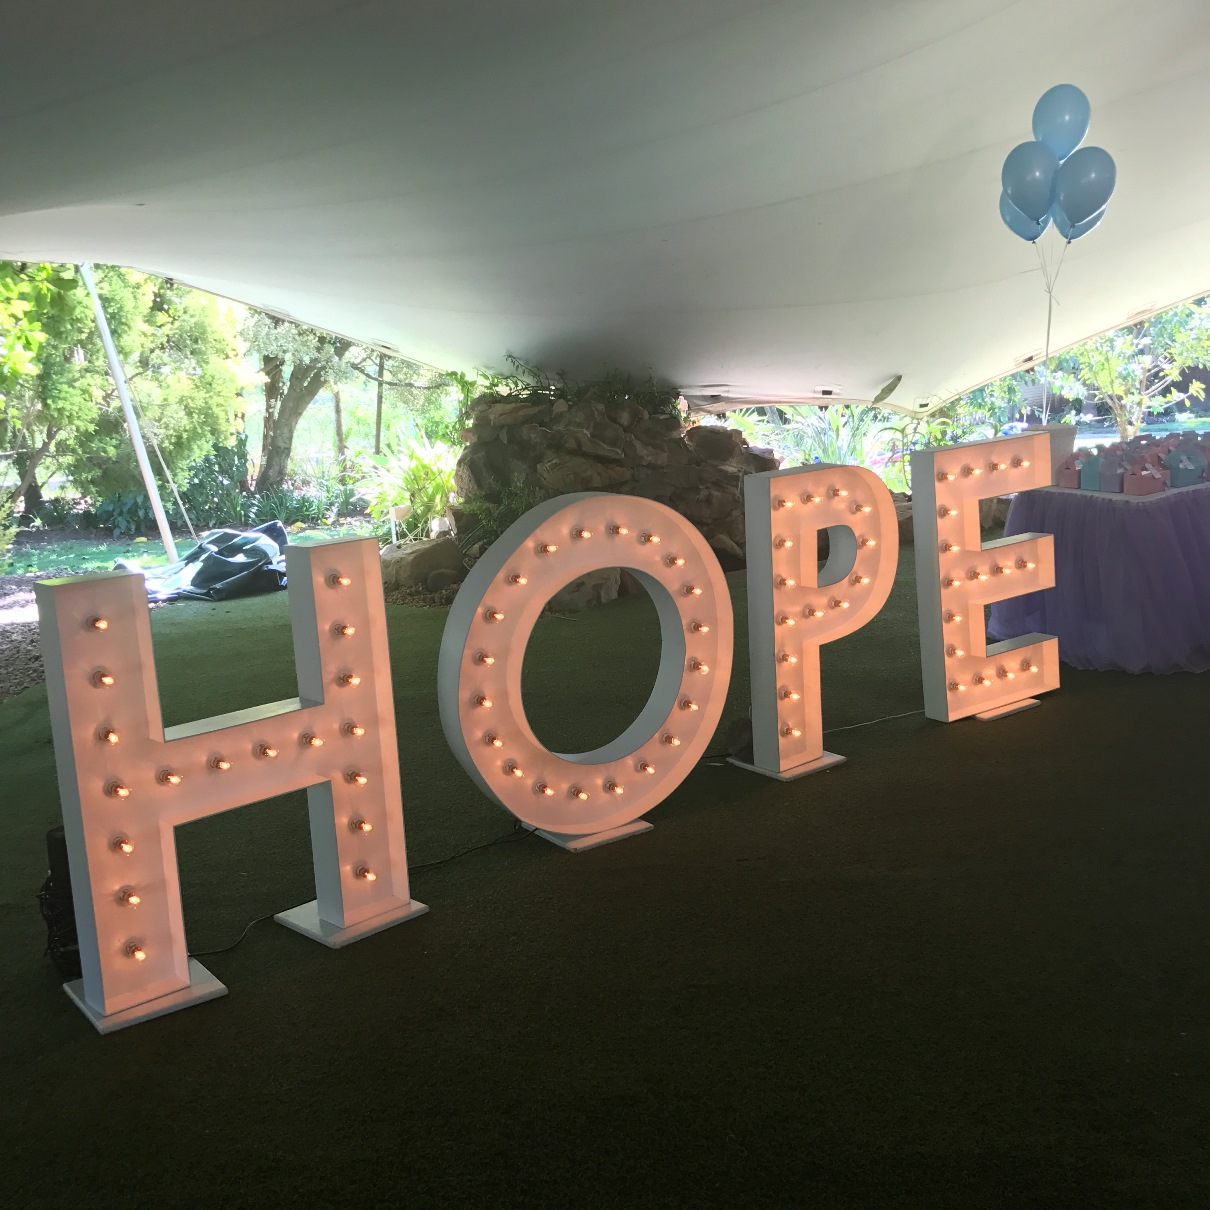 Marquee Letters name HOPE.JPG